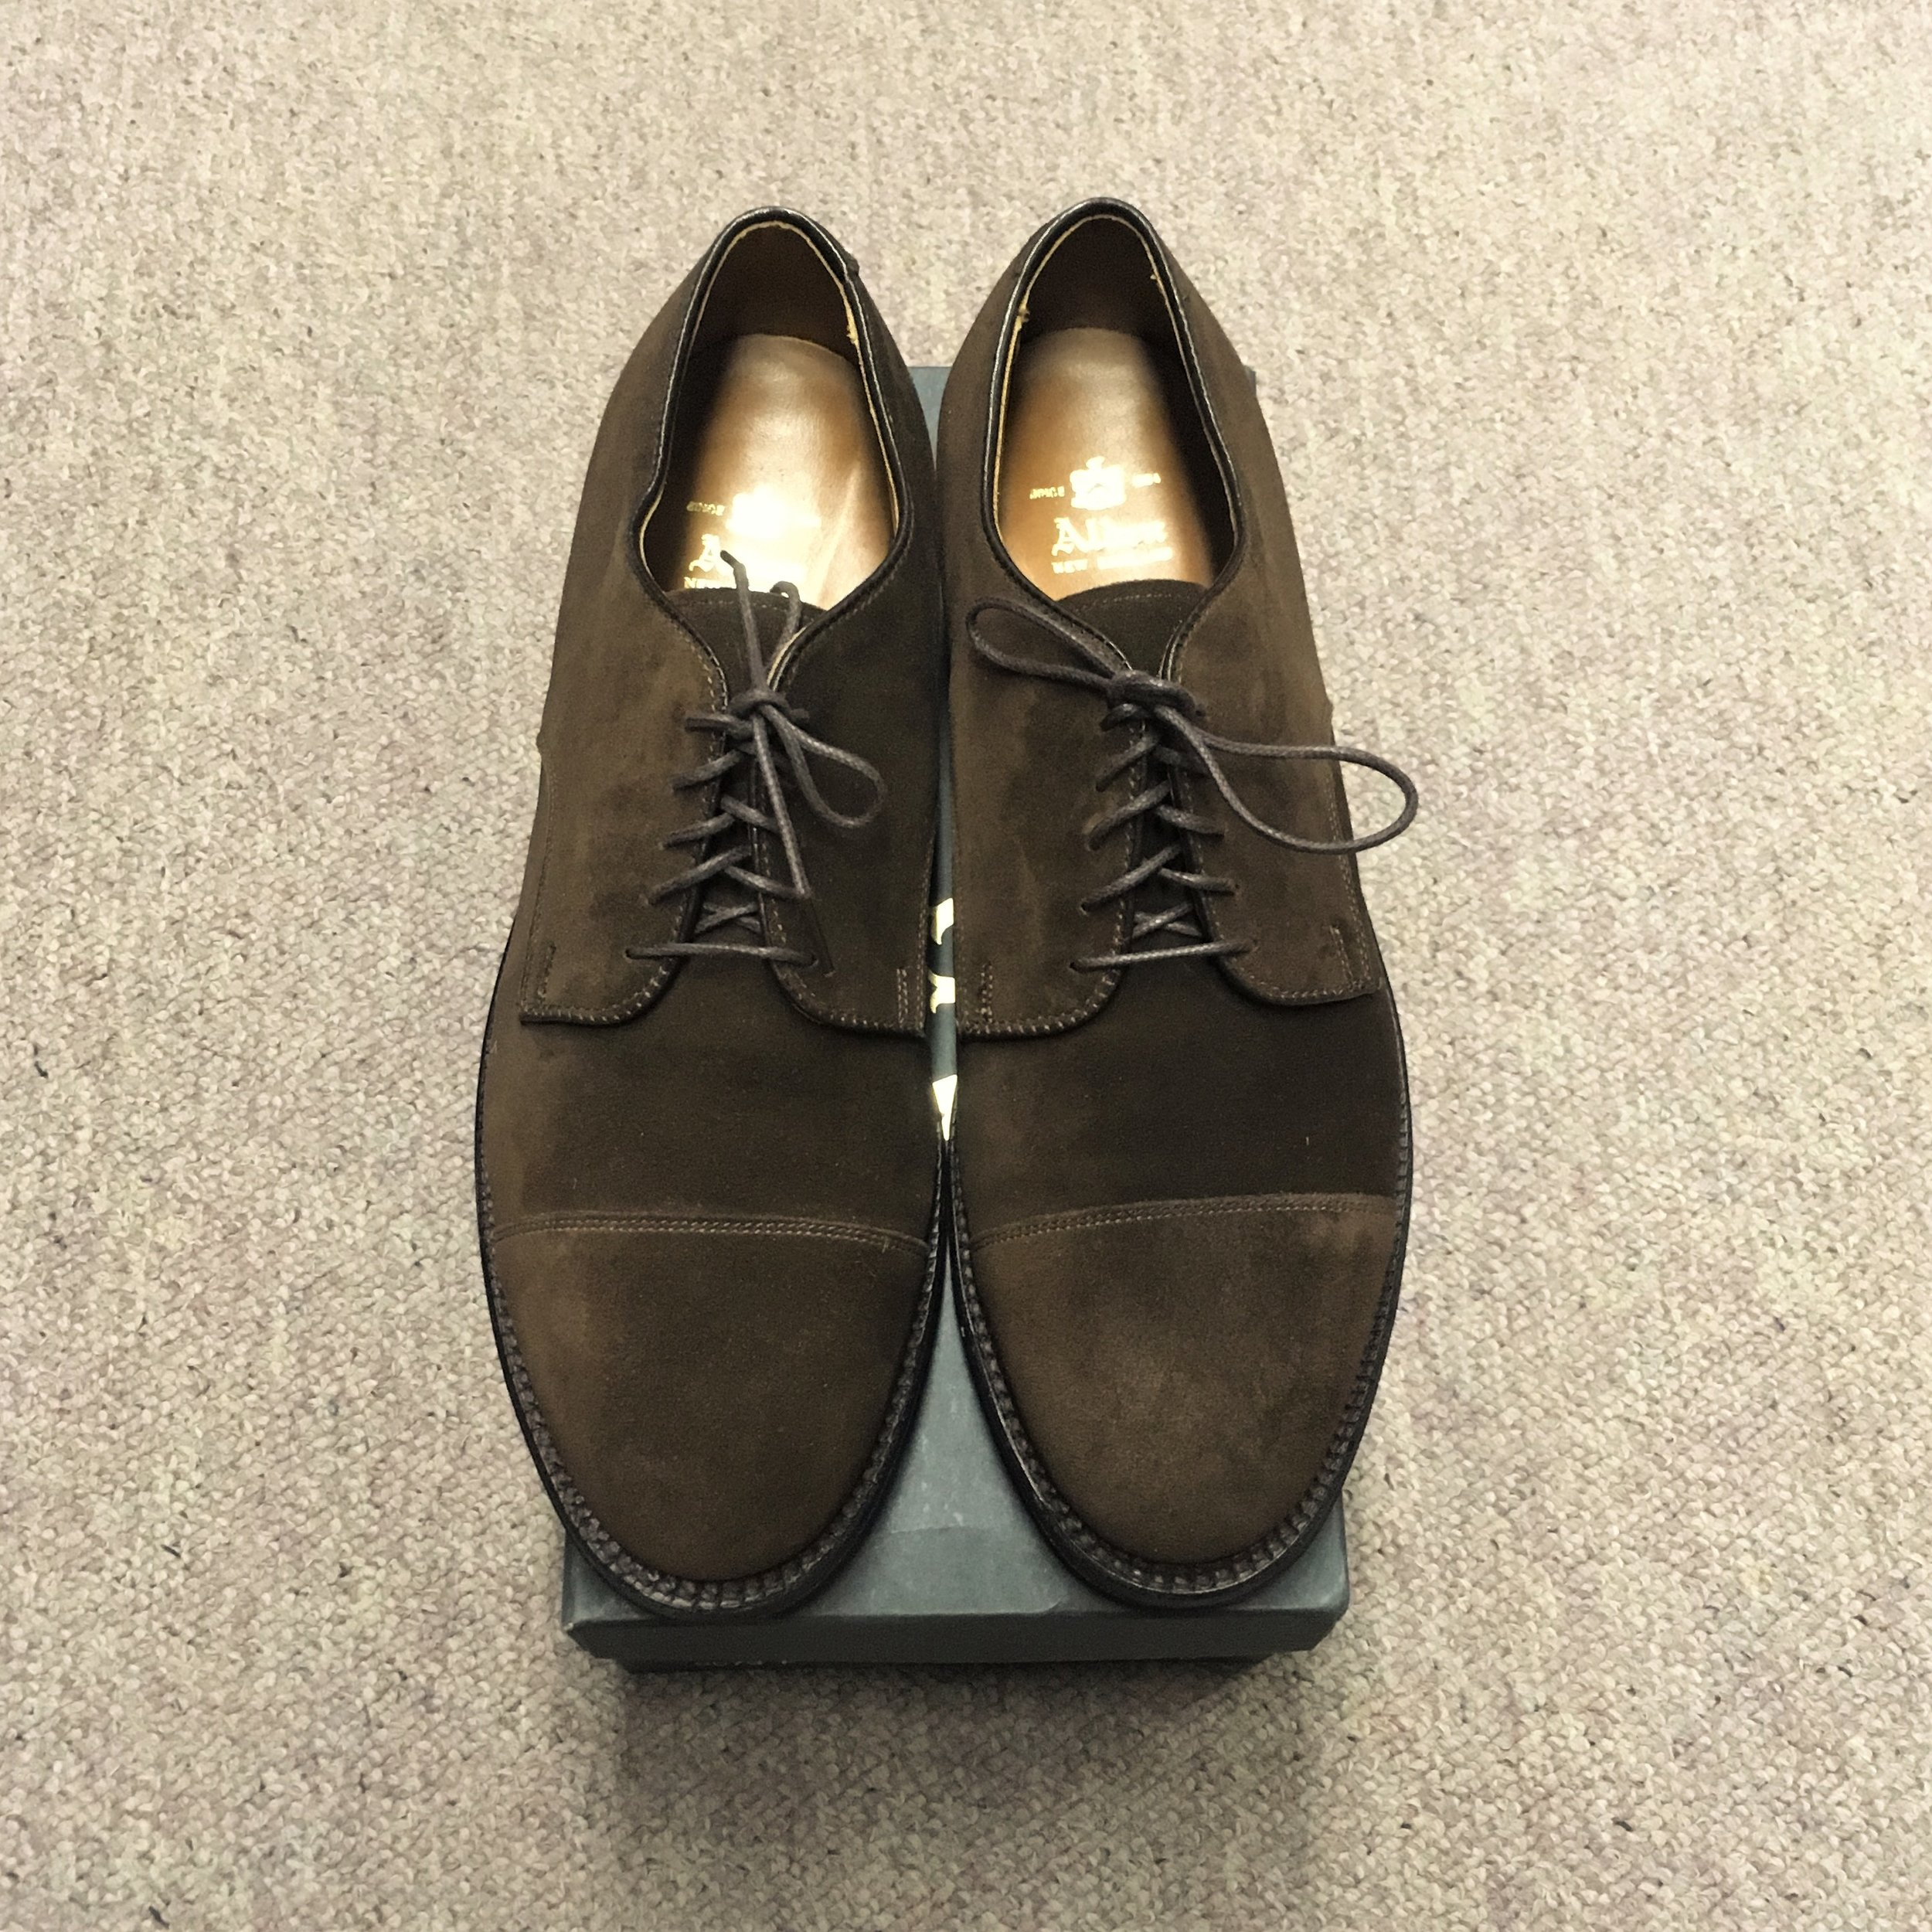 #9573f - Copley LastDark Brown Suede - Straight Tip Blucher - Flex Welt Leather SoleDiscontinued ModelLAST PAIR SIZE 10 DMSRP $563Contact us for Pricing and Availability